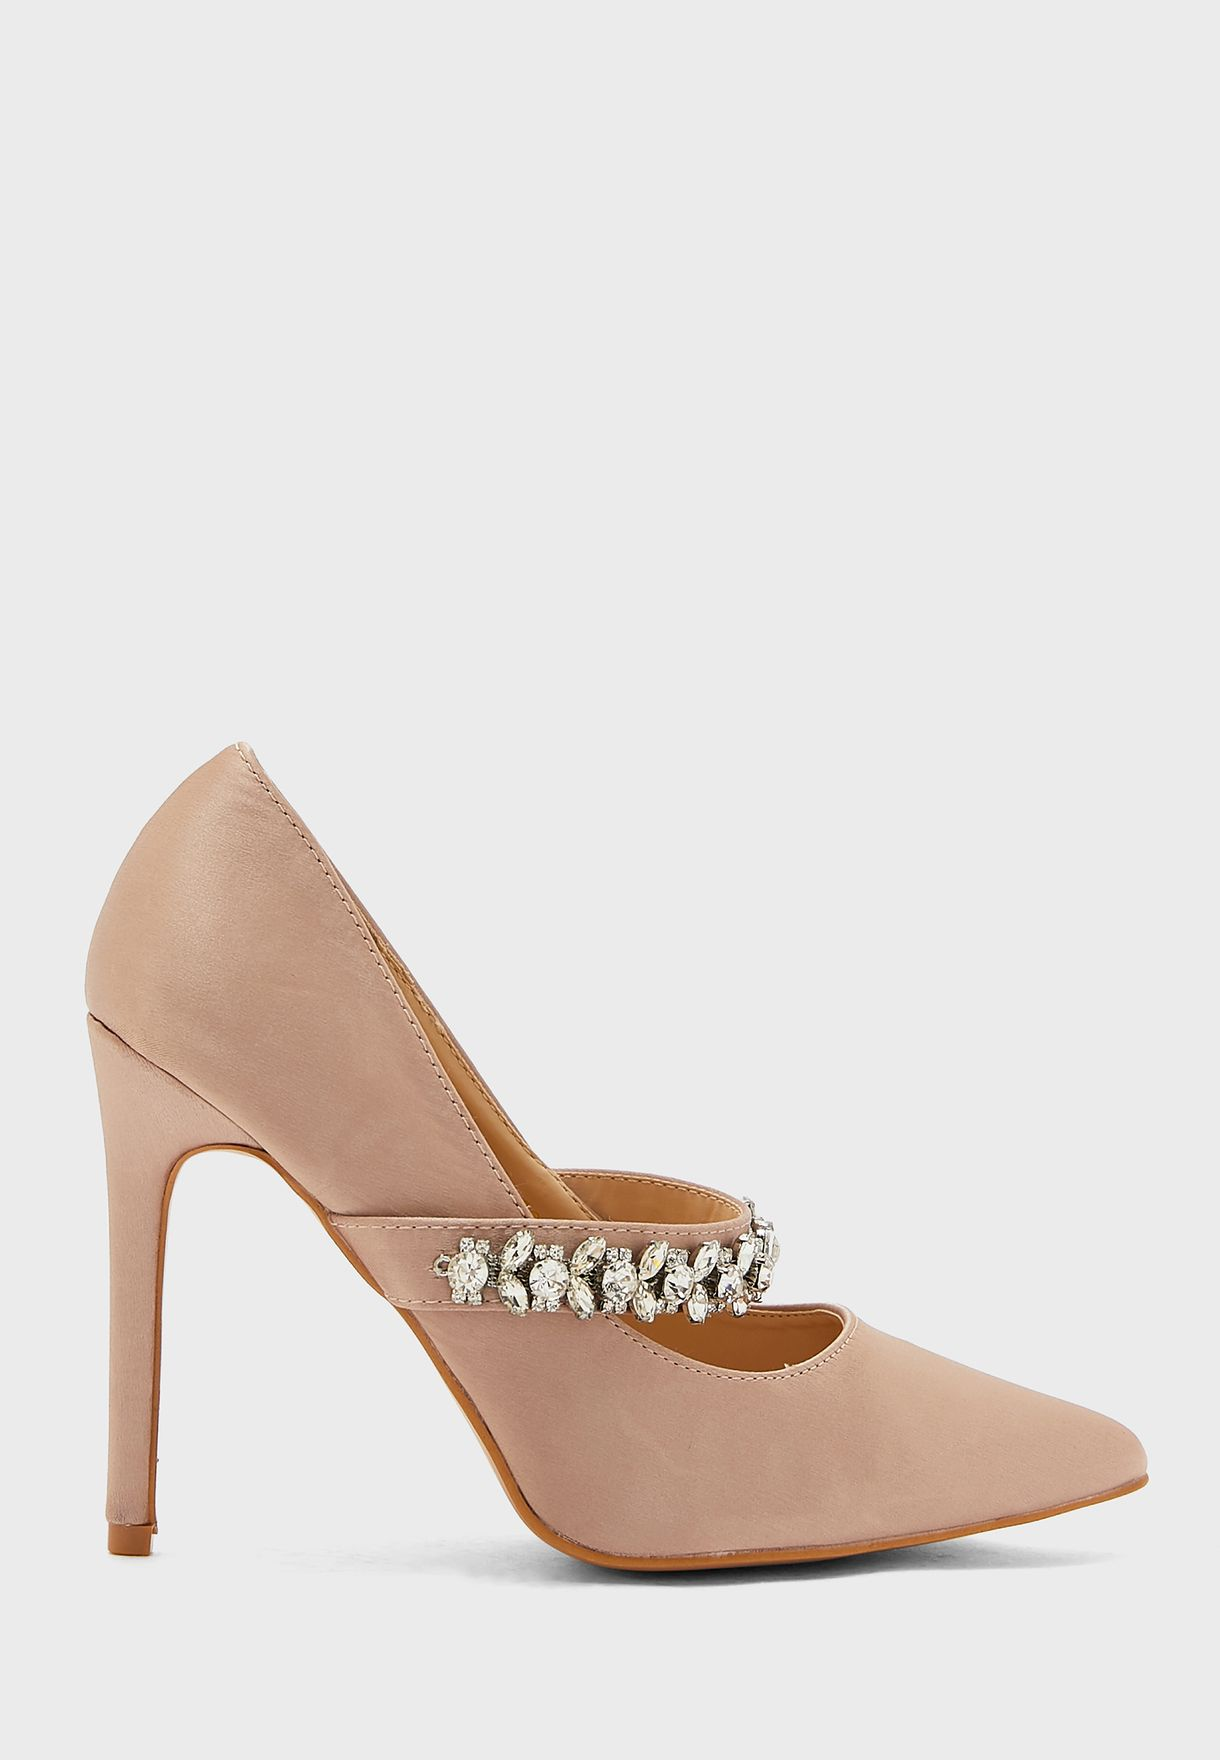 Pointed Satin Stiletto With Embellished Strap